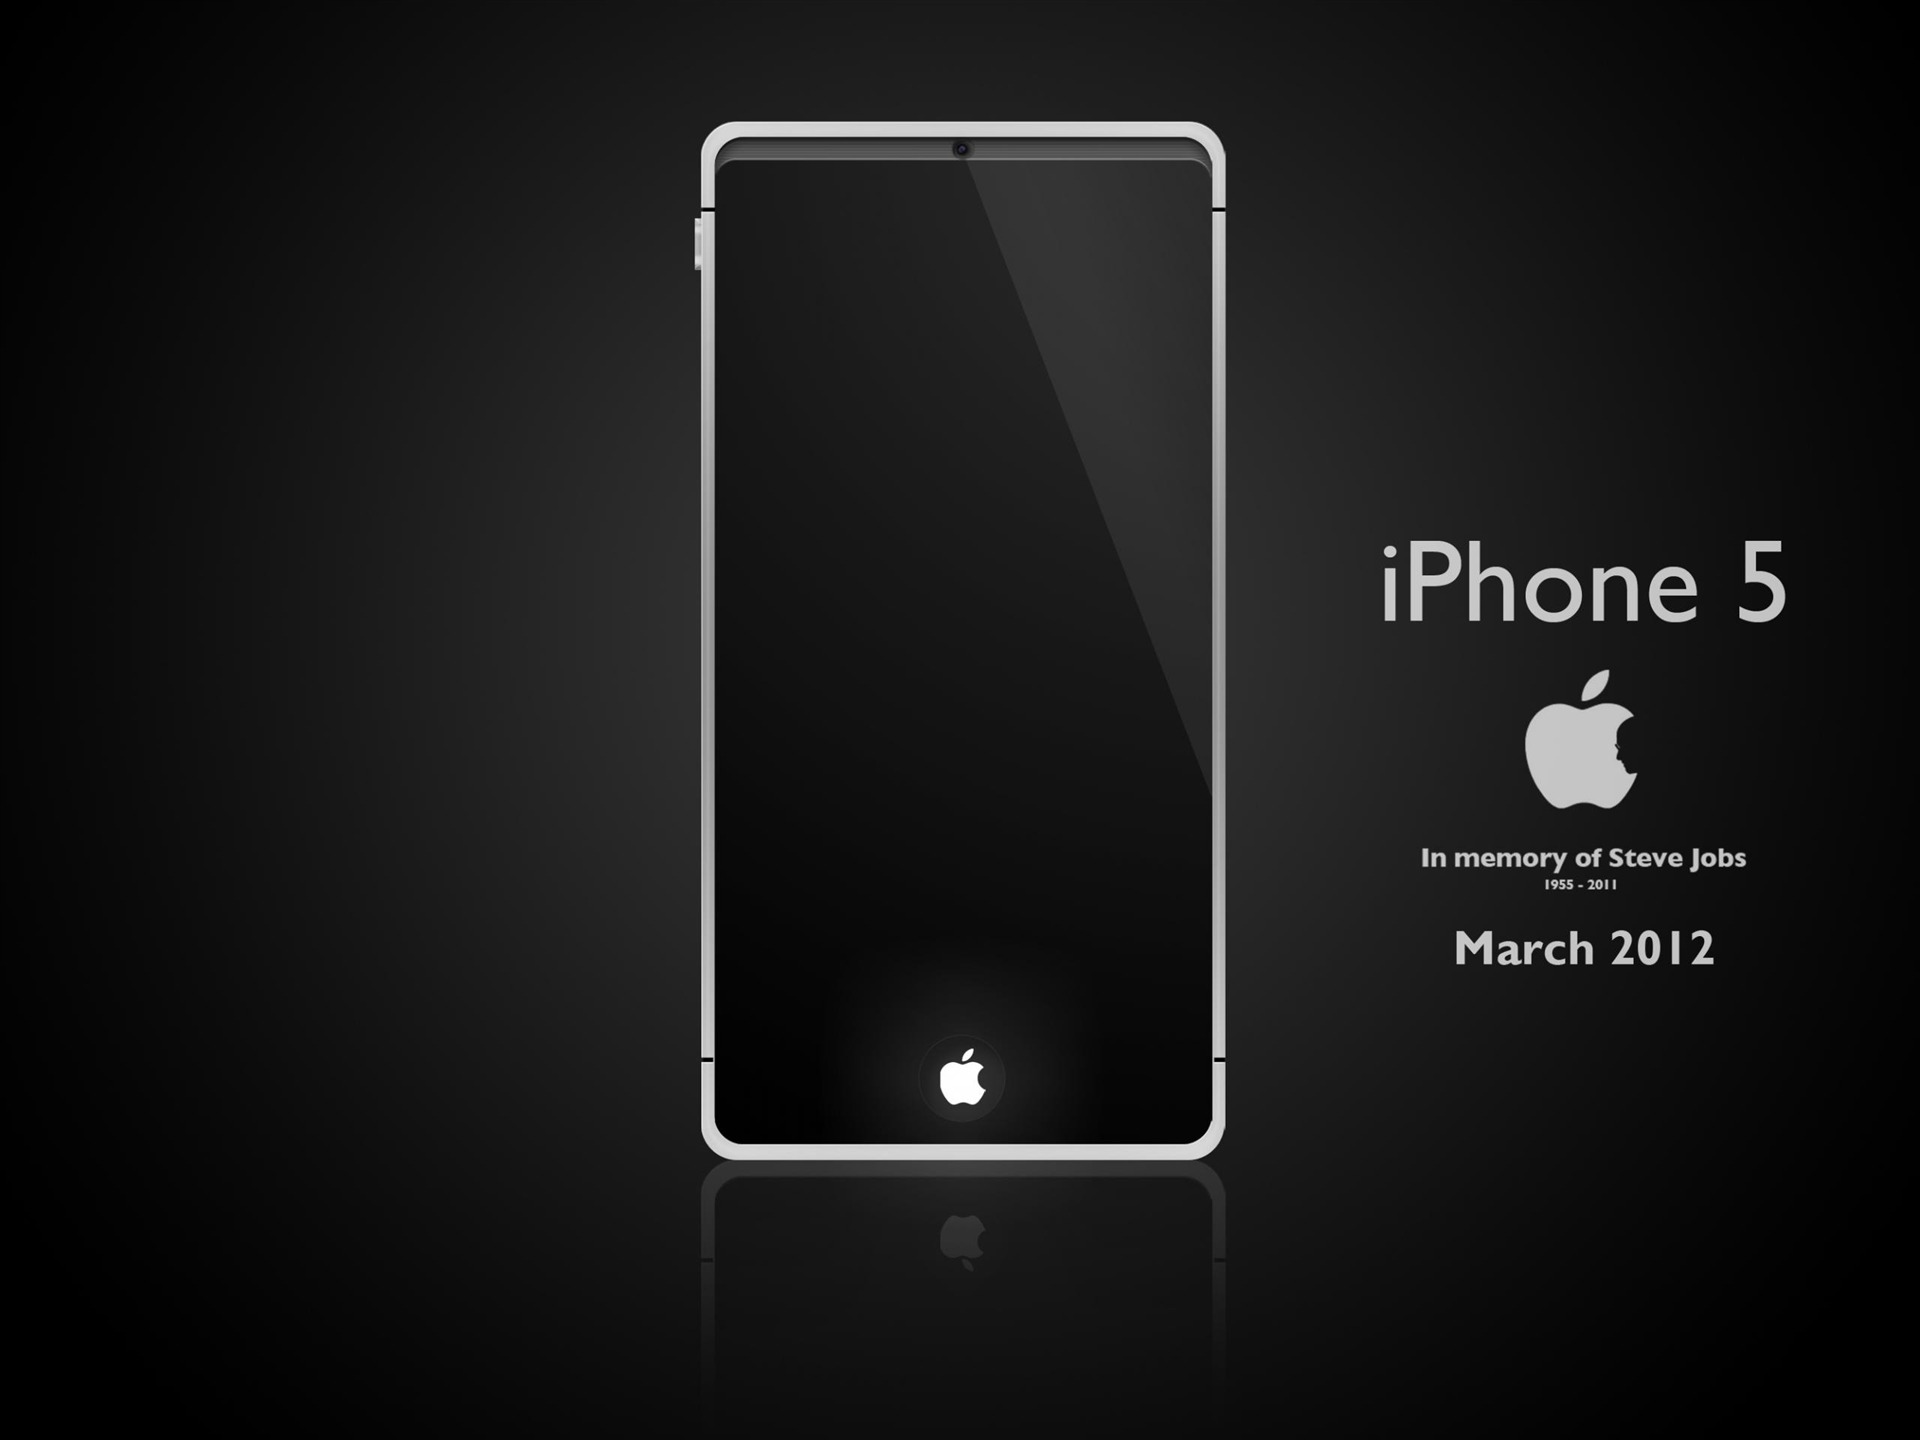 Appleiphone5hd 1920x1440 appleiphone5hd 1920x1440 voltagebd Gallery